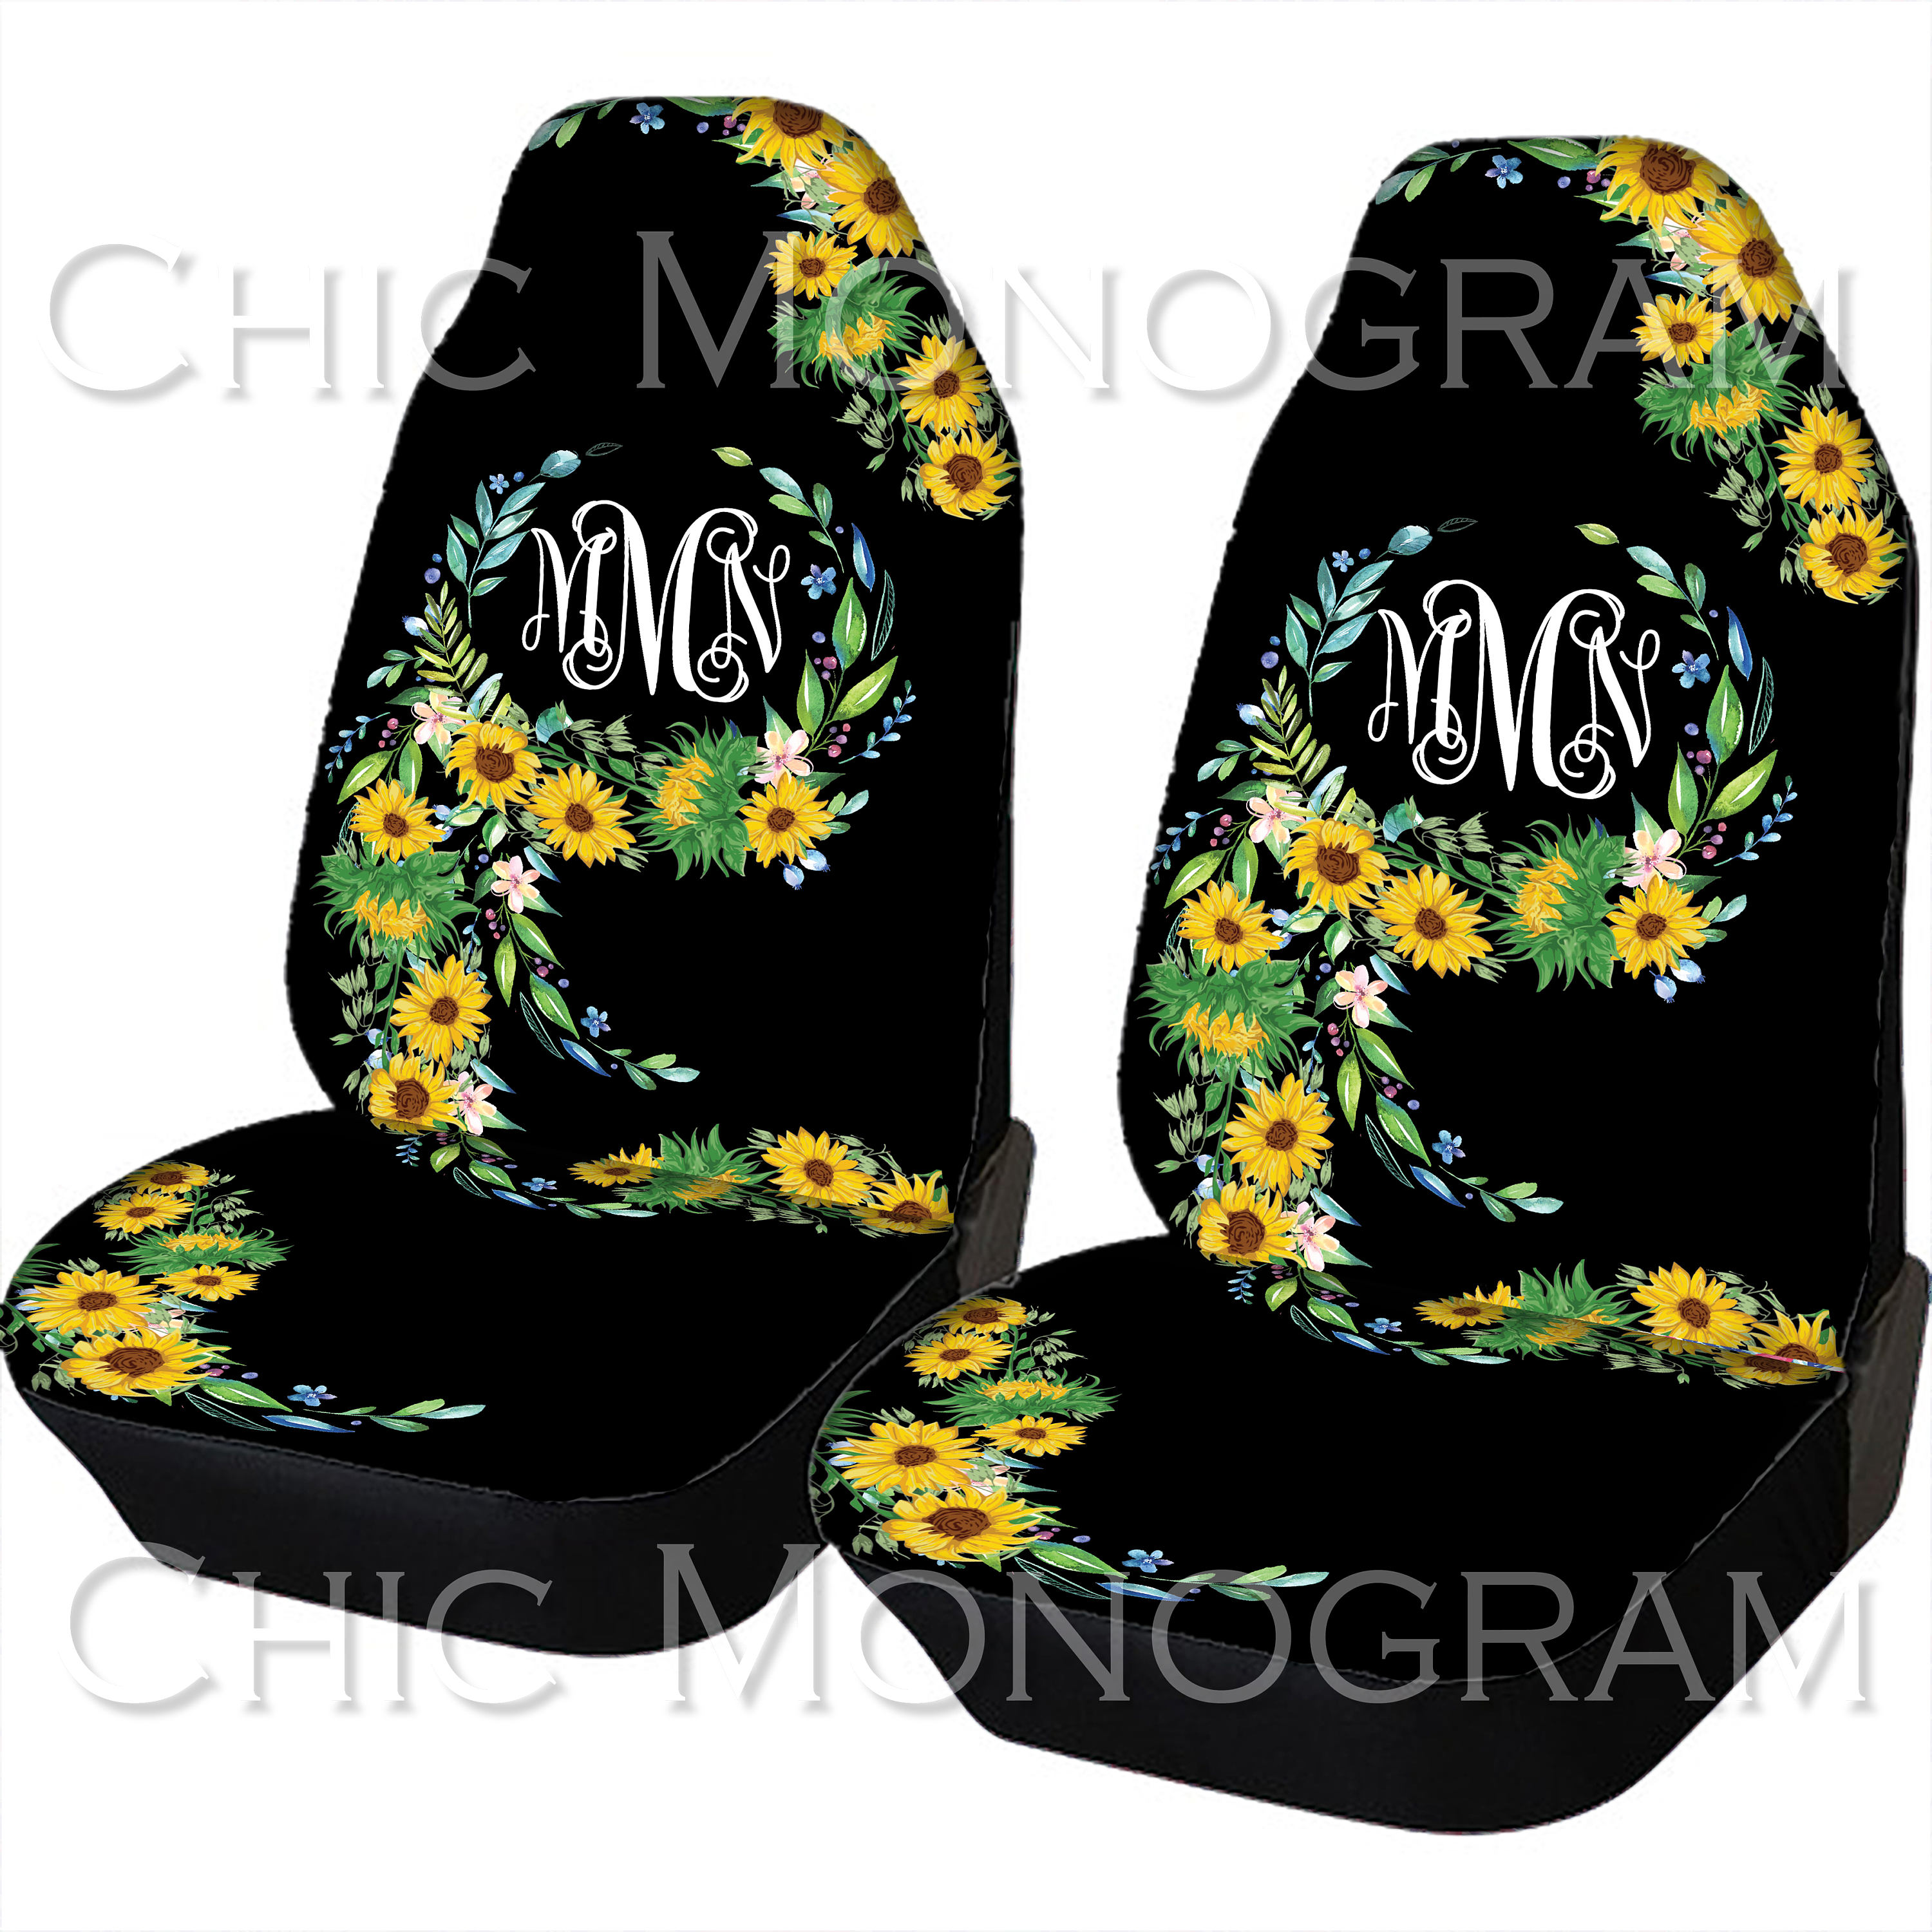 Monogram Seat Covers For Cars - Velcromag